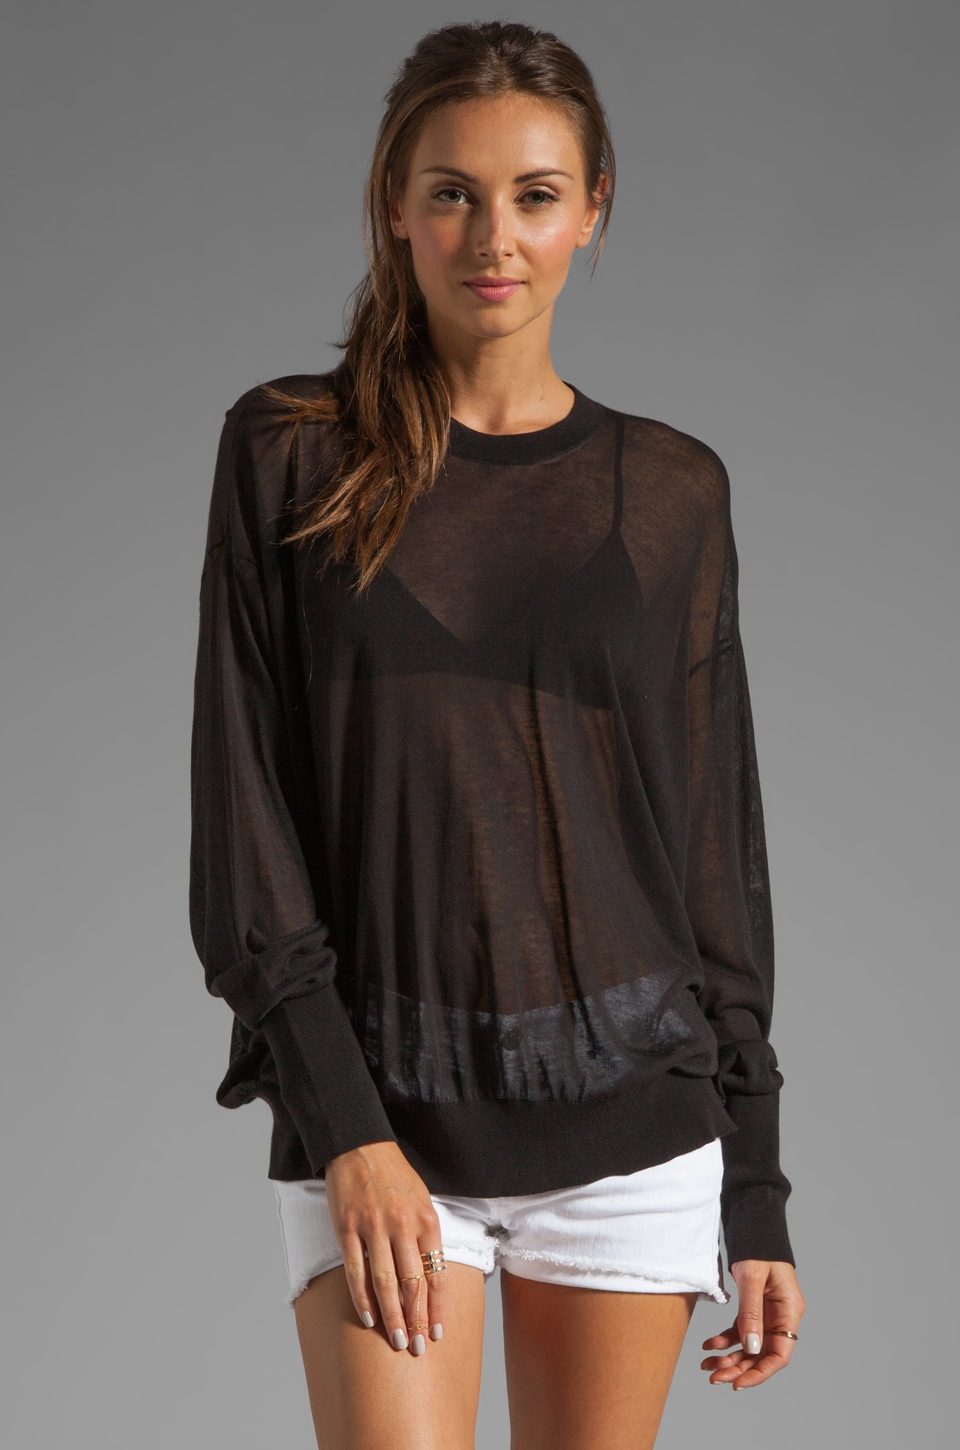 T by Alexander Wang Sheer Loose Knit Crew Neck Pullover in Black